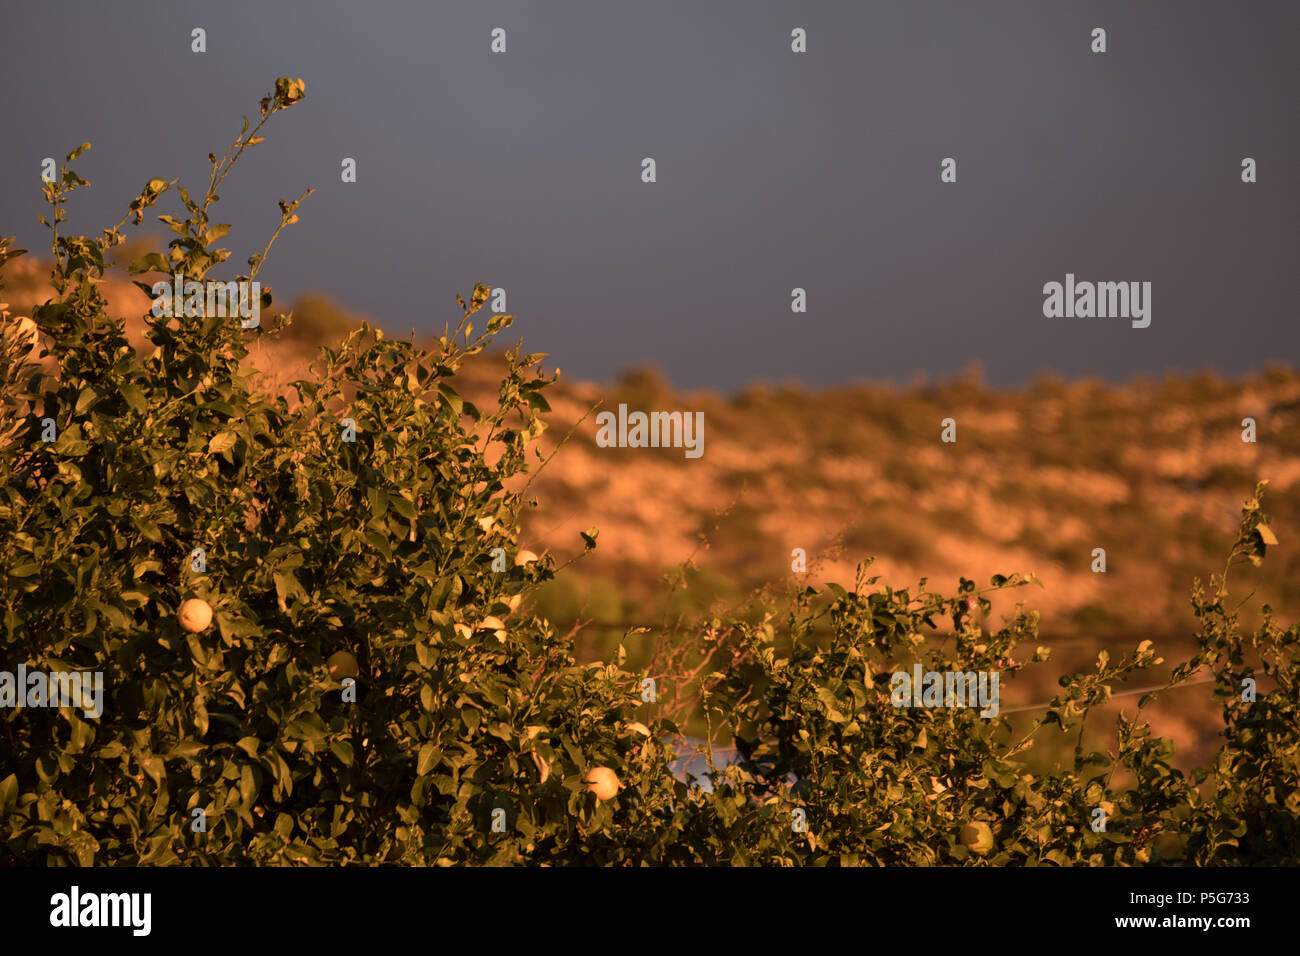 Greek mountain, Golden hour beautiful light with grey clouds, Lemon Tree. Saronida, Greece. Stock Photo